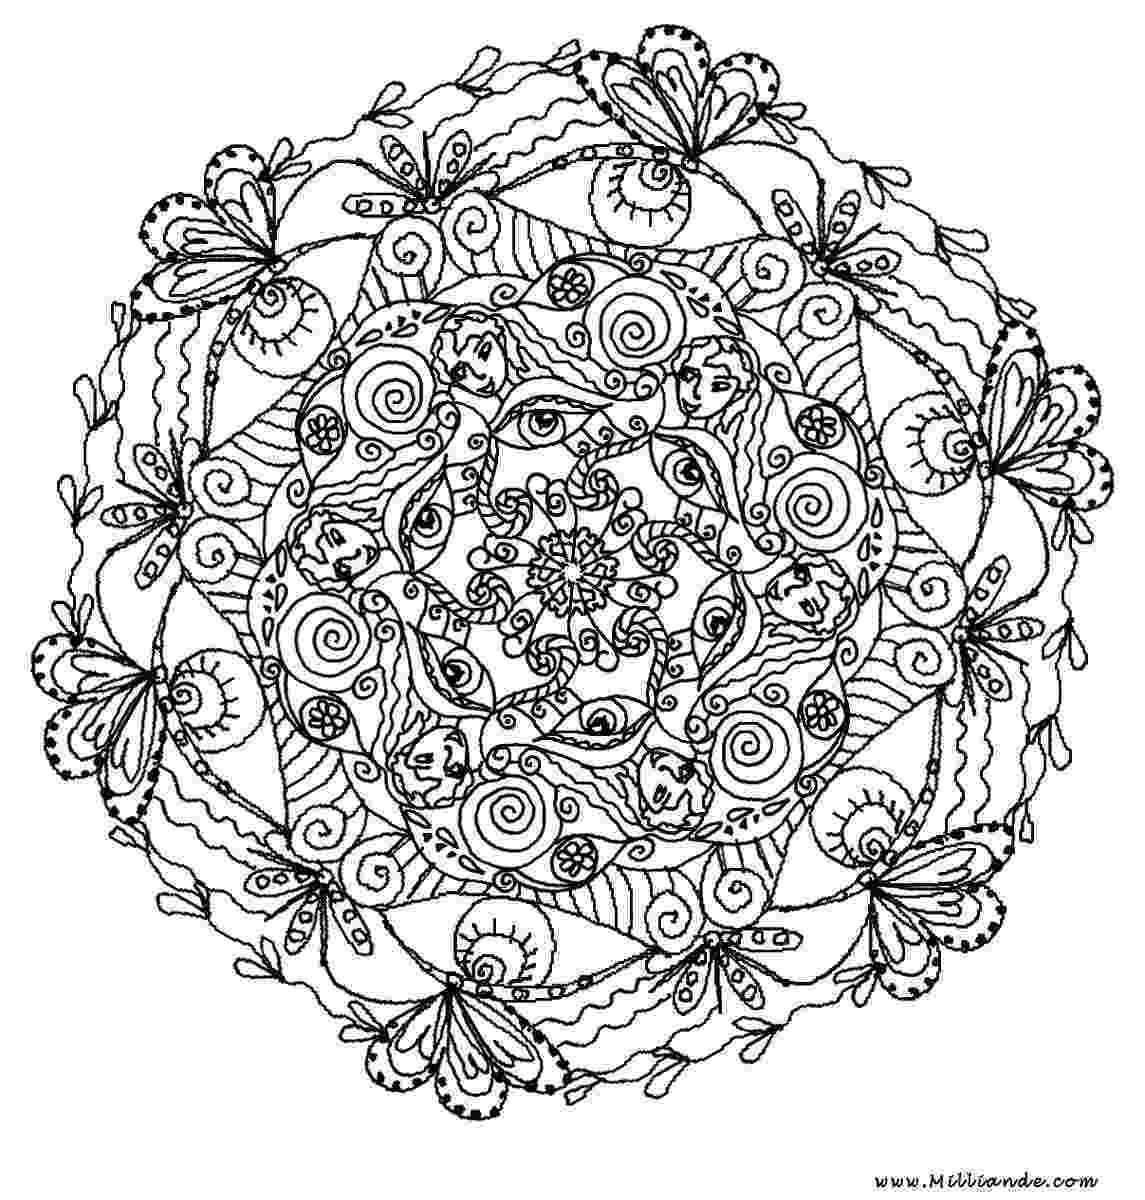 free printable mandalas for adults mandala from free coloring books for adults 9 malas adults printable for mandalas free